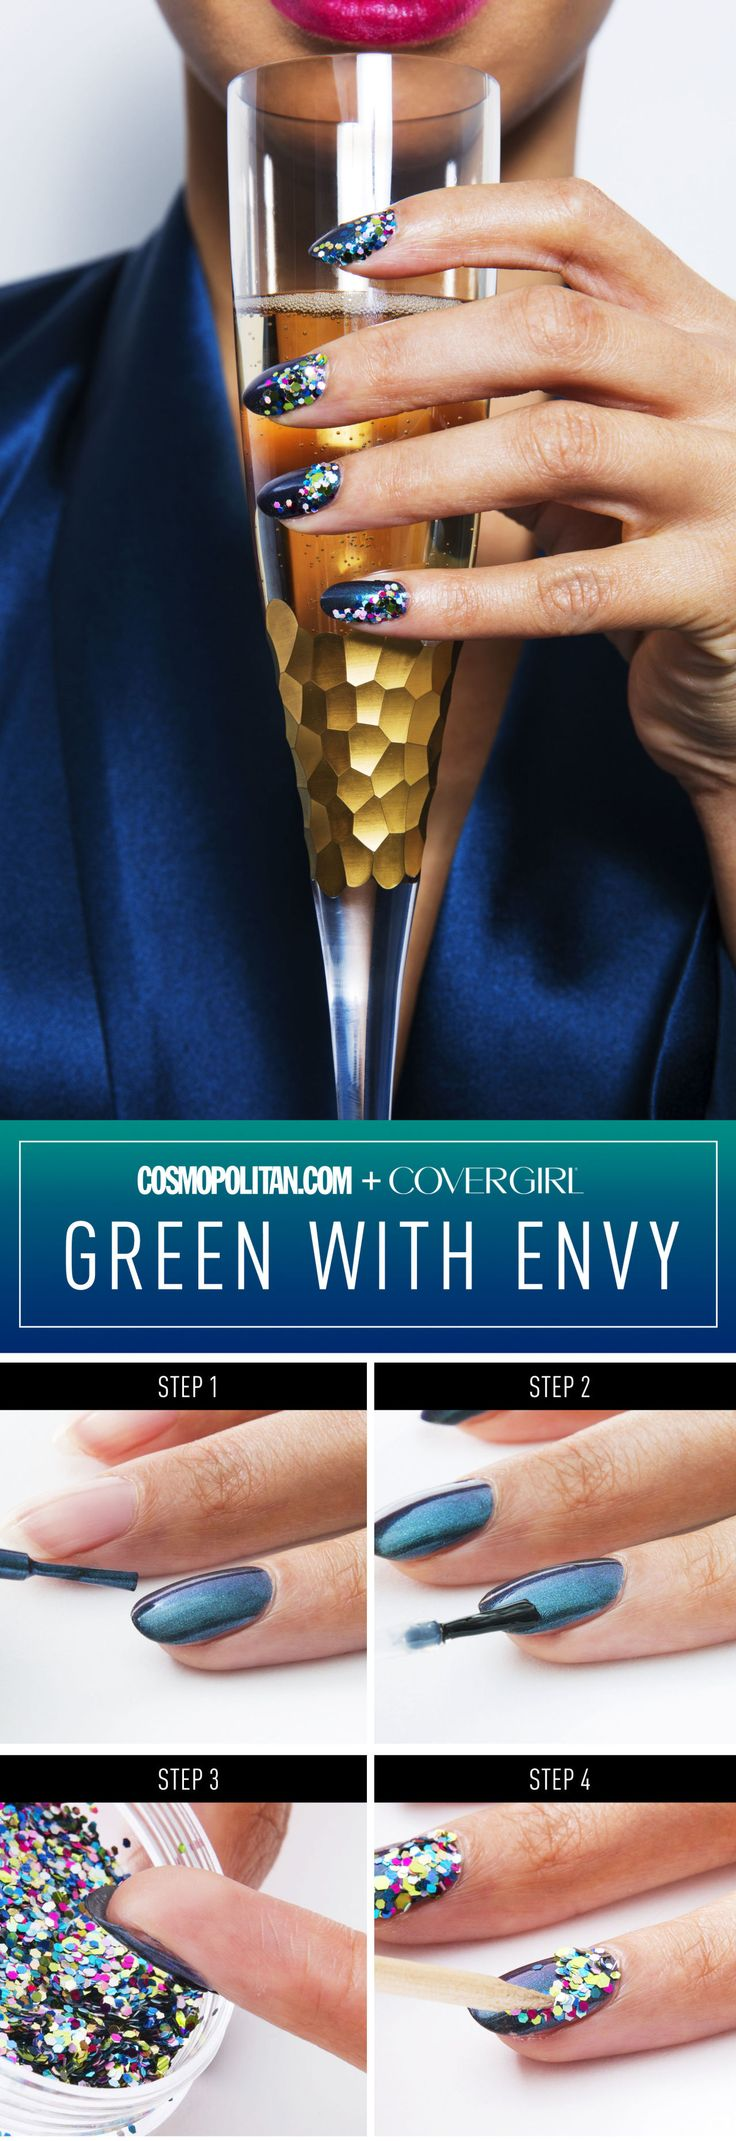 """NEW YEAR'S EVE NAIL IDEAS: Click through for 4 New Year's Eve nail looks created by pro manicurist Elena Capo. These fun mani ideas scream, """"Let's Party!"""" DIY this glam look, called """"Green with Envy"""" with a multidimensional teal polish, glitter, and a topcoat. Click through for the easy manicure tutorial."""